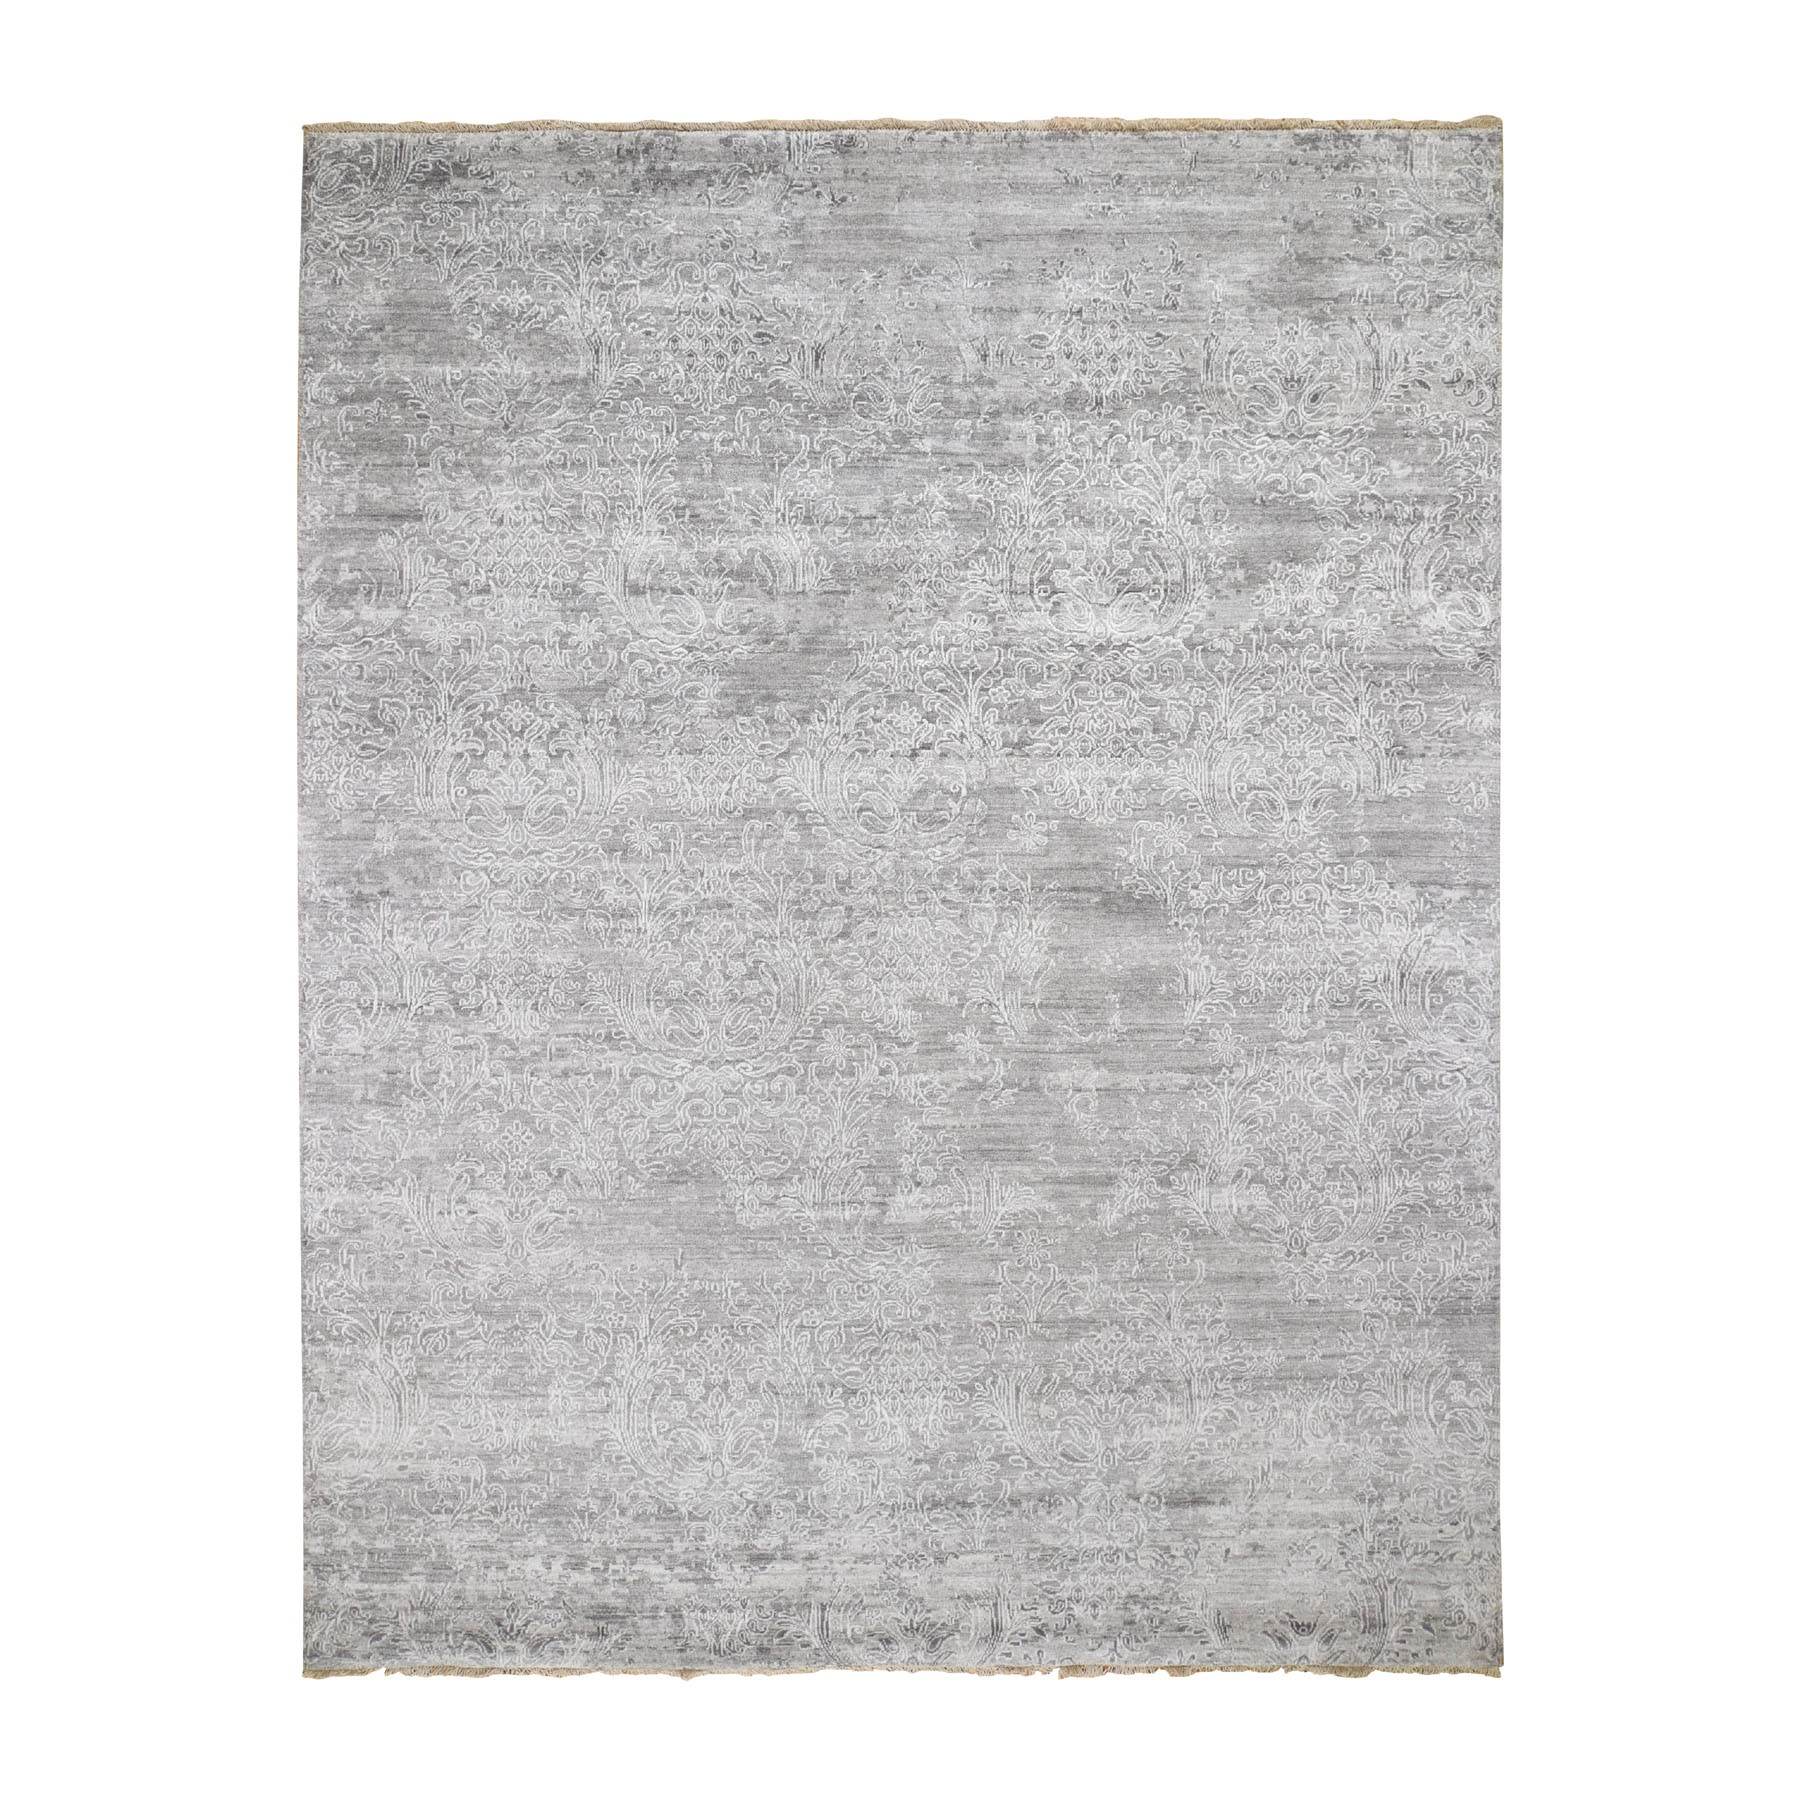 "7'10""X10' Gray Damask Tone On Tone Wool and Silk Hand Knotted Oriental Rug"